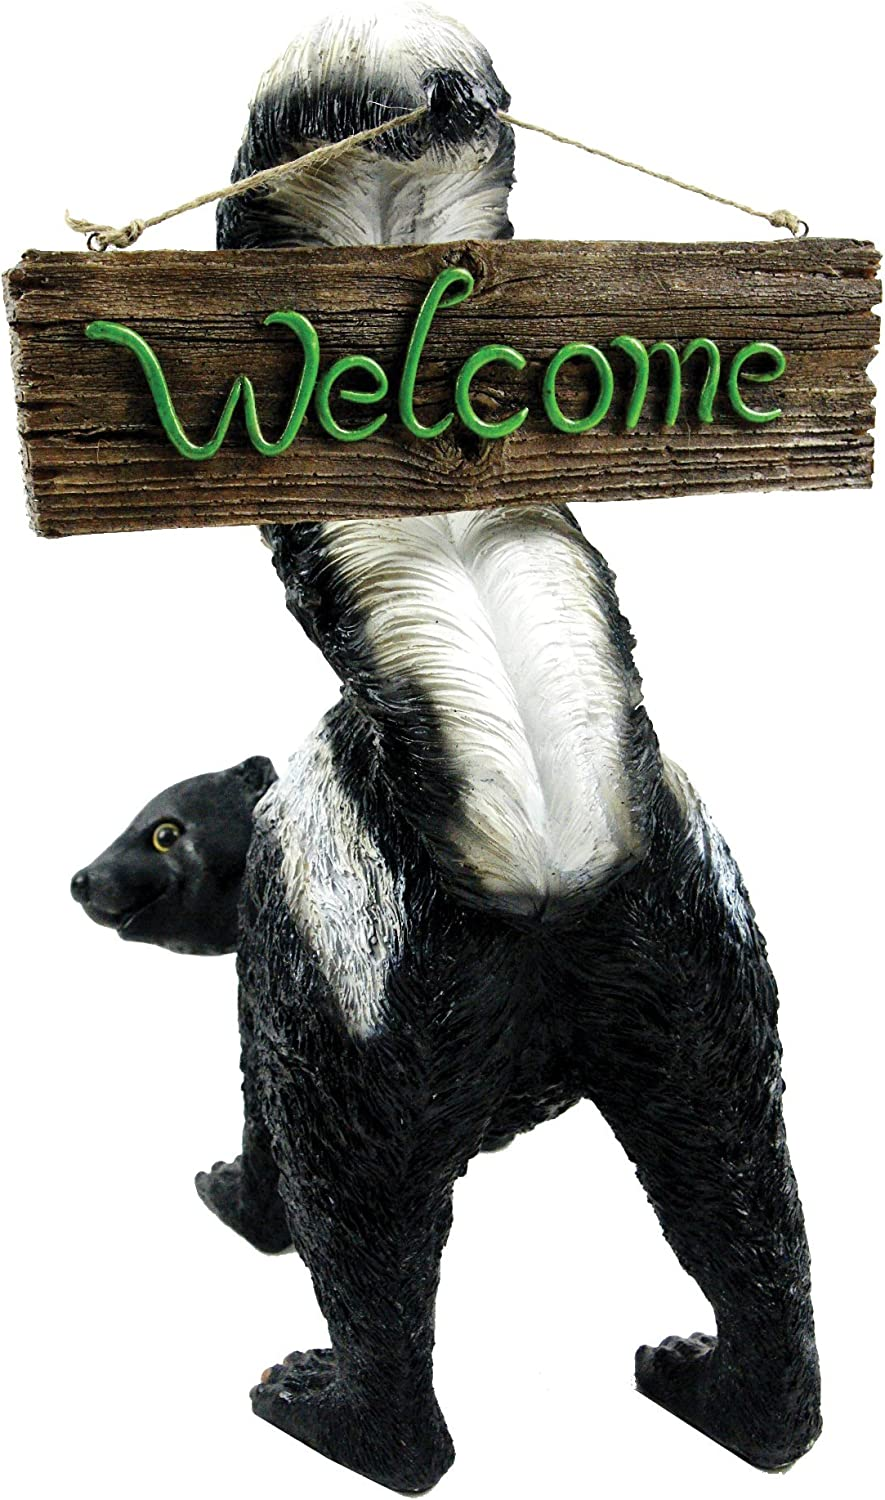 Amazon Com Welcome From Stinky By Michael Carr Designs Outdoor Skunk Figurine For Gardens Patios And Lawns 80056 Garden Outdoor